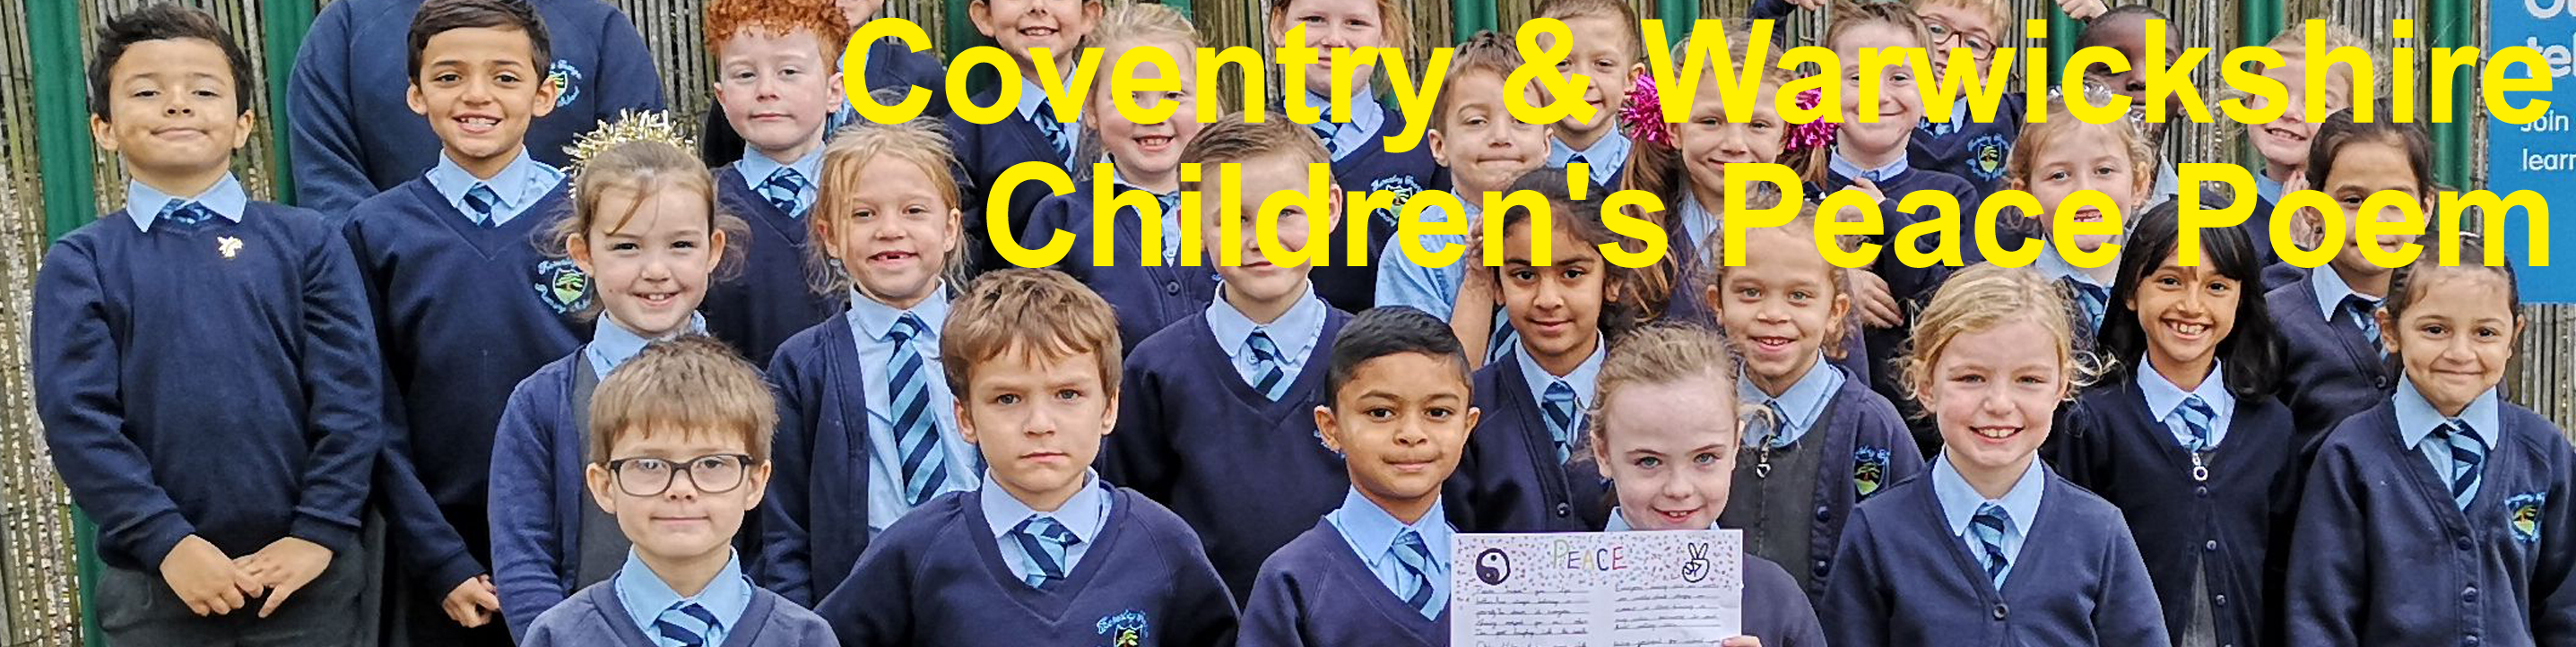 Cov and Warks Childrens Peace Poem